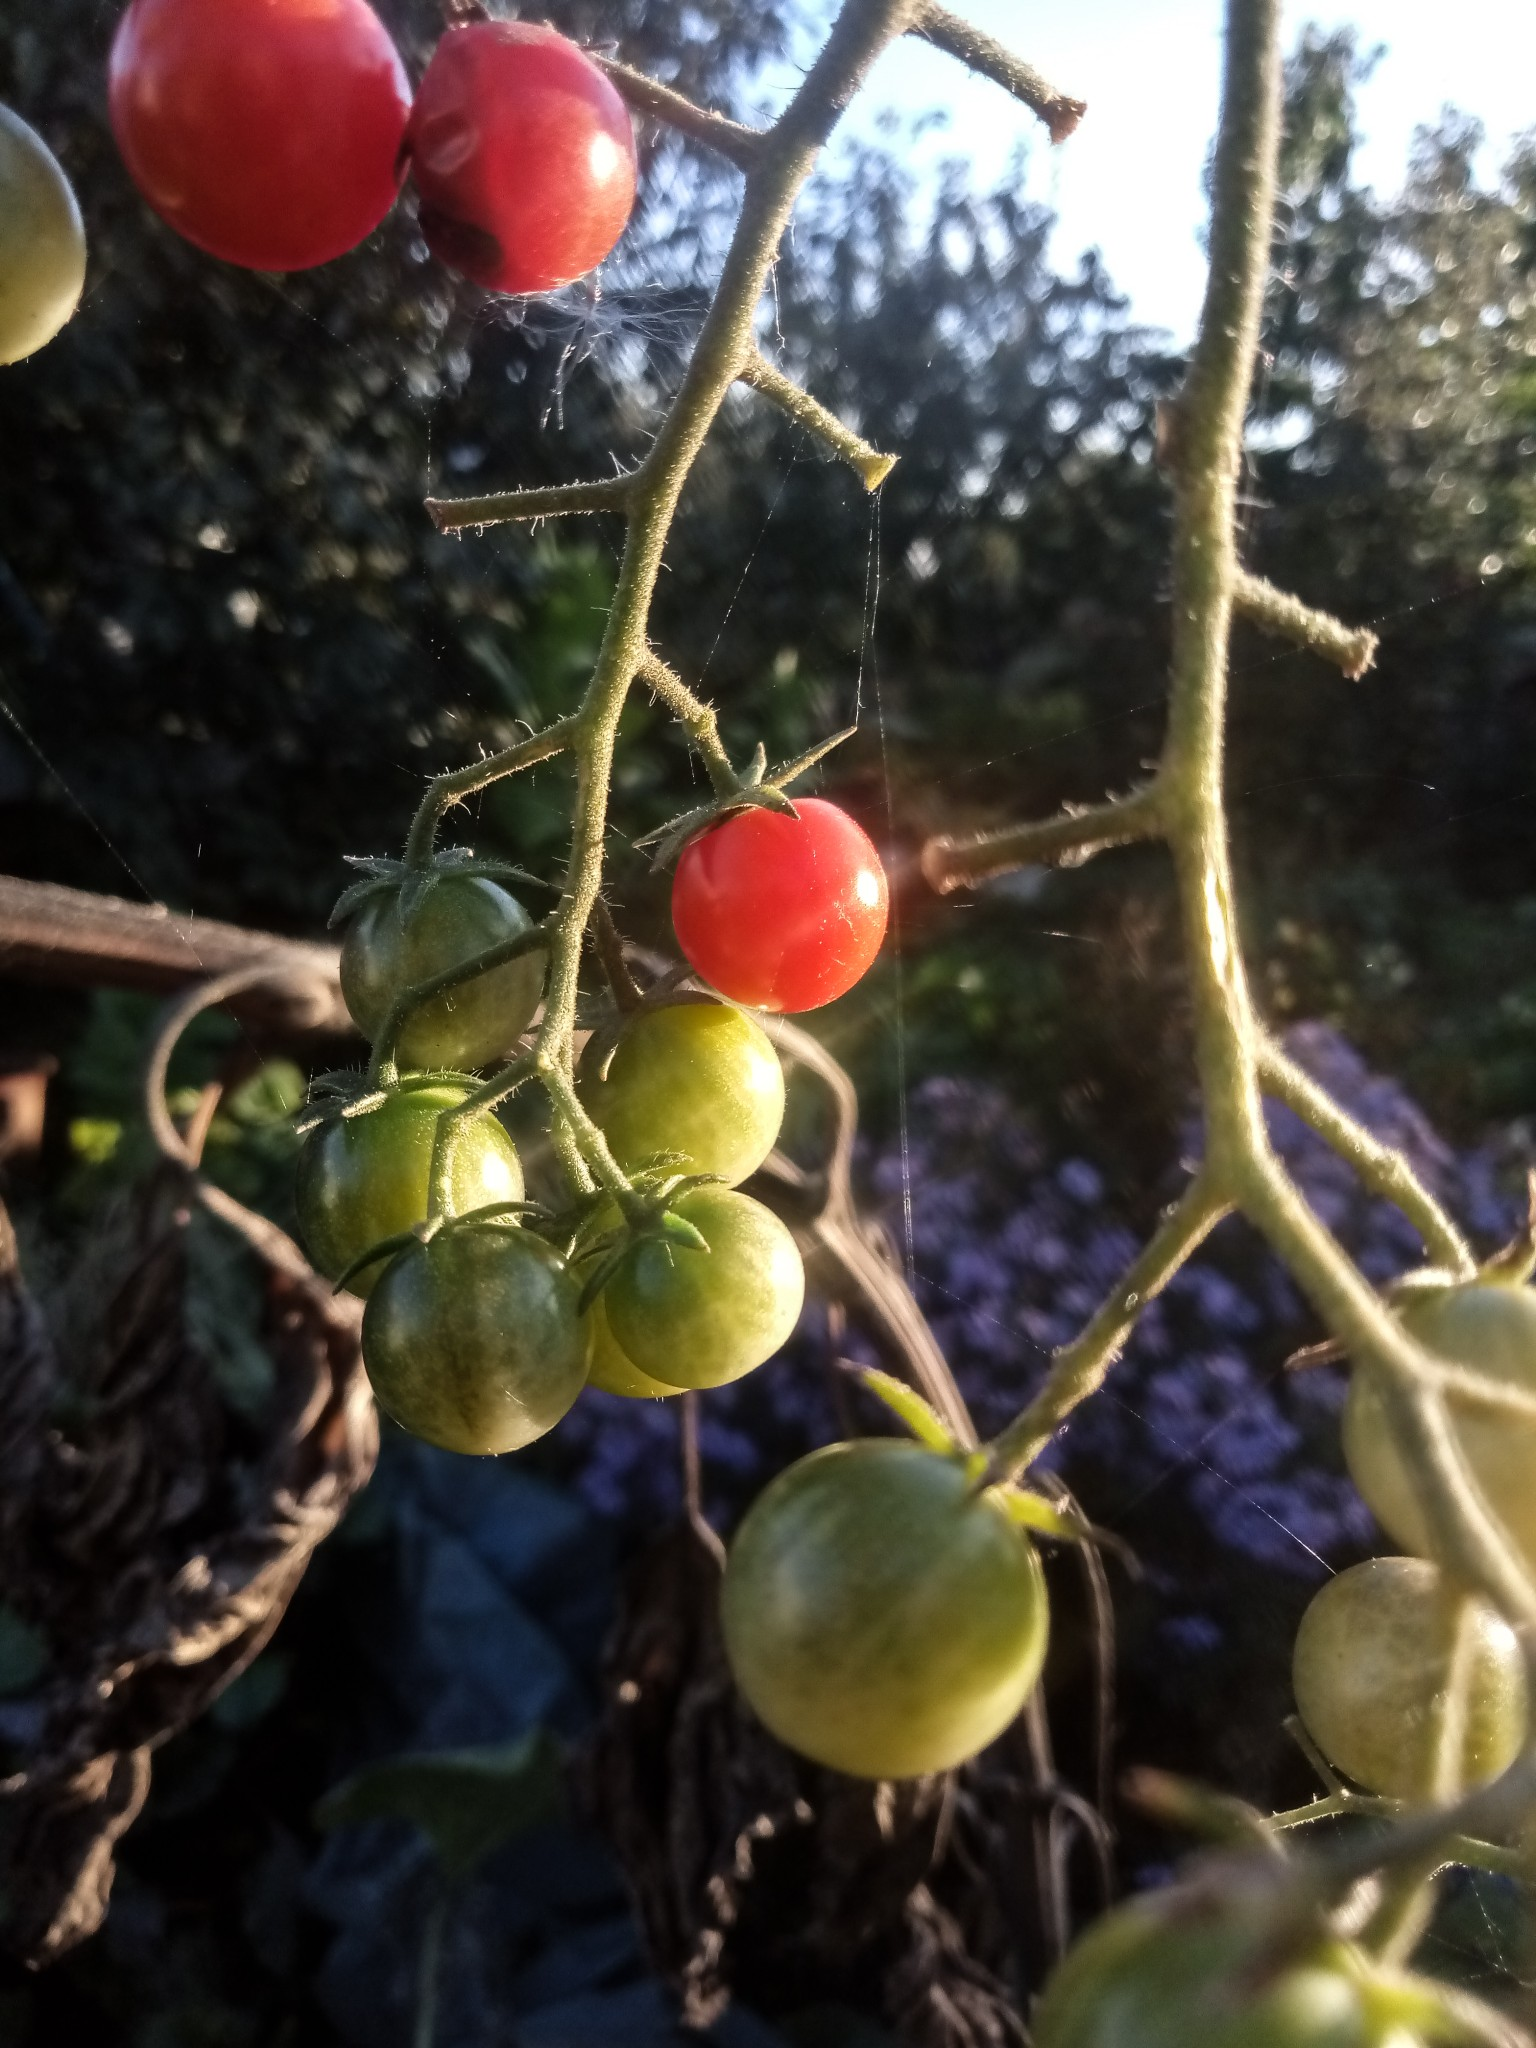 Cherry tomatoes photo 6